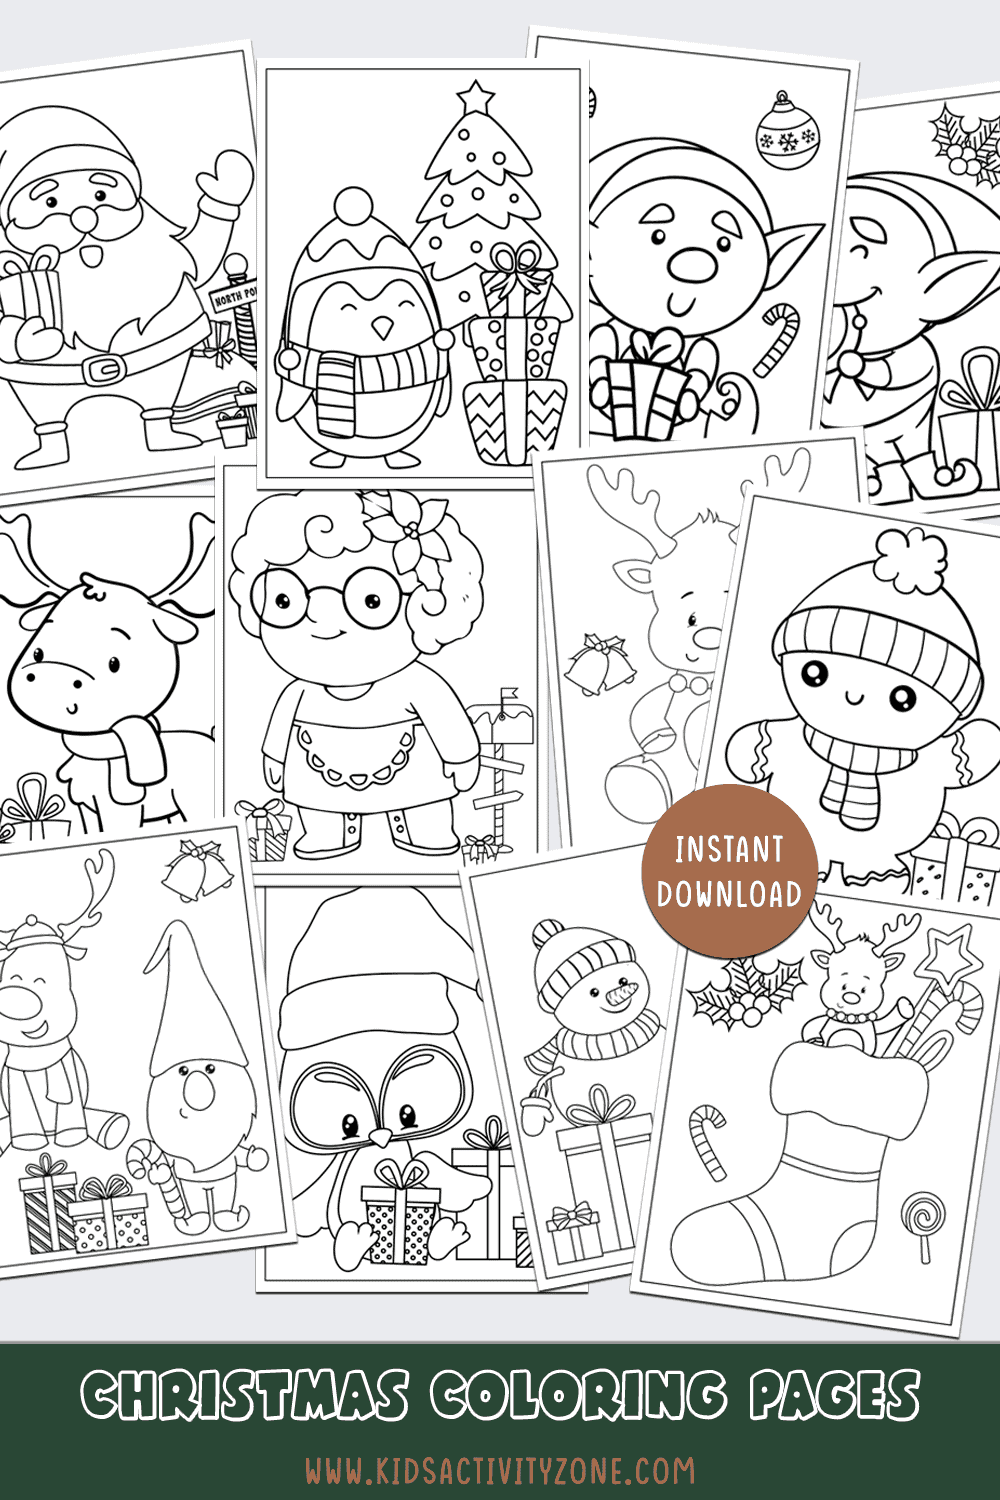 Collage of Christmas Coloring Pages Image